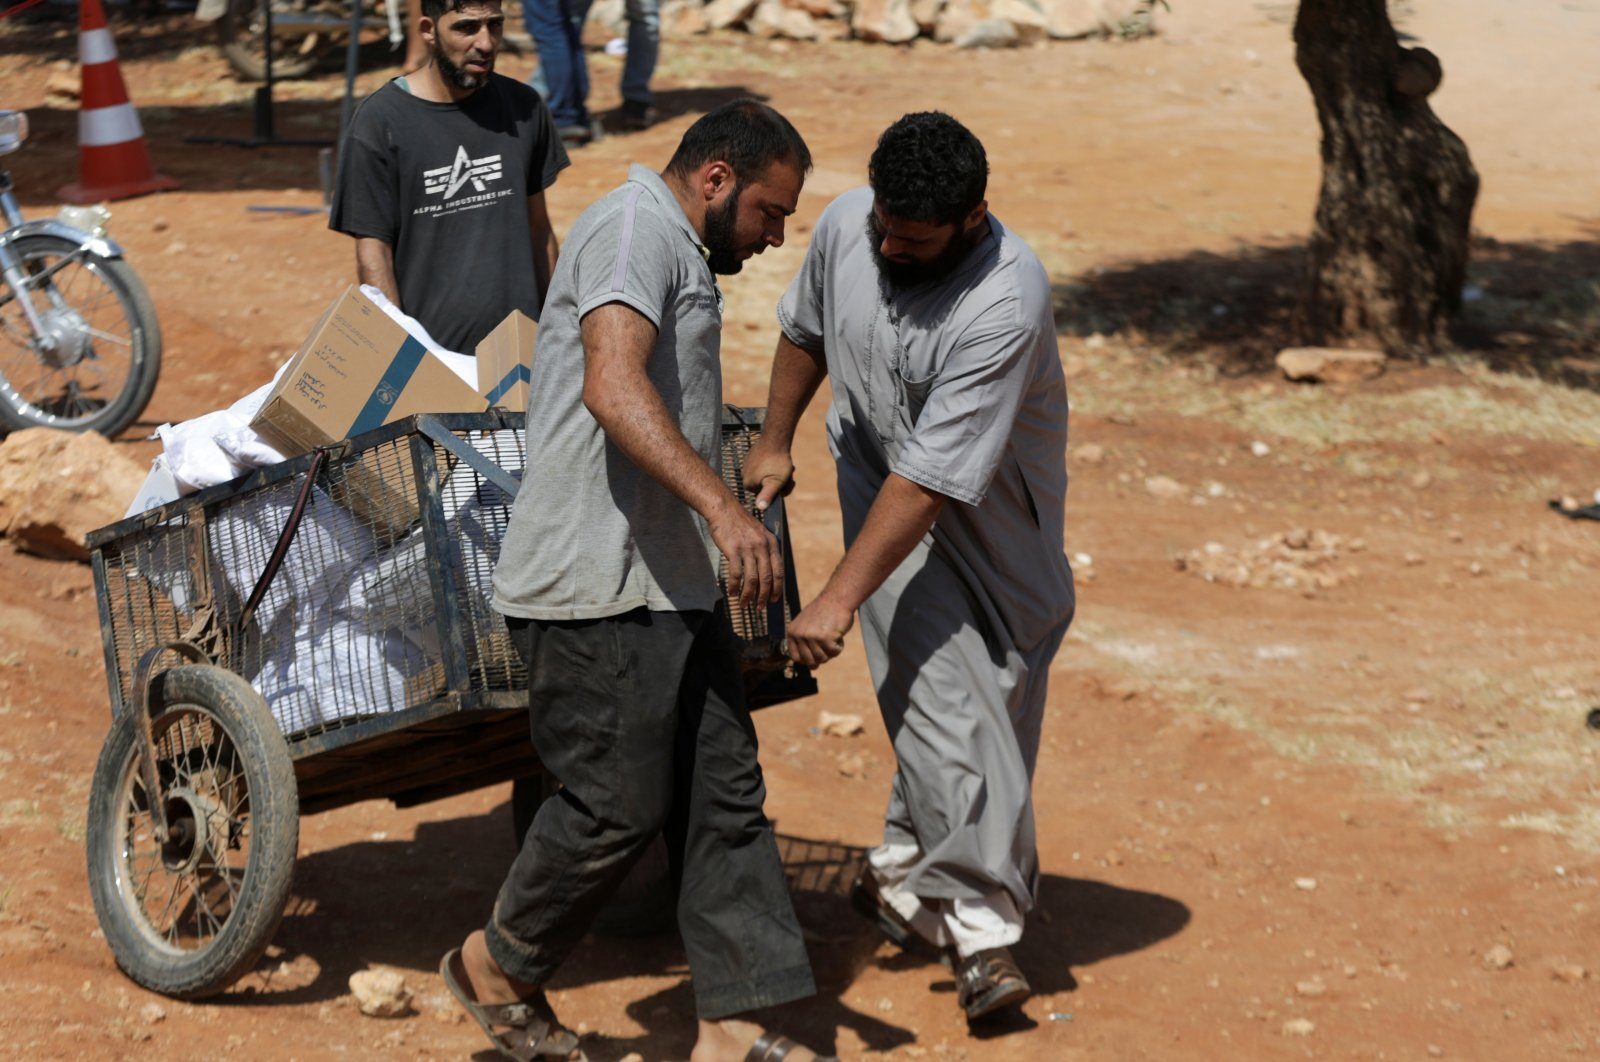 Internally displaced Syrian men pull a cart with humanitarian aid in the opposition-held Idlib, northwestern Syria, June 9, 2021. (REUTERS Photo)